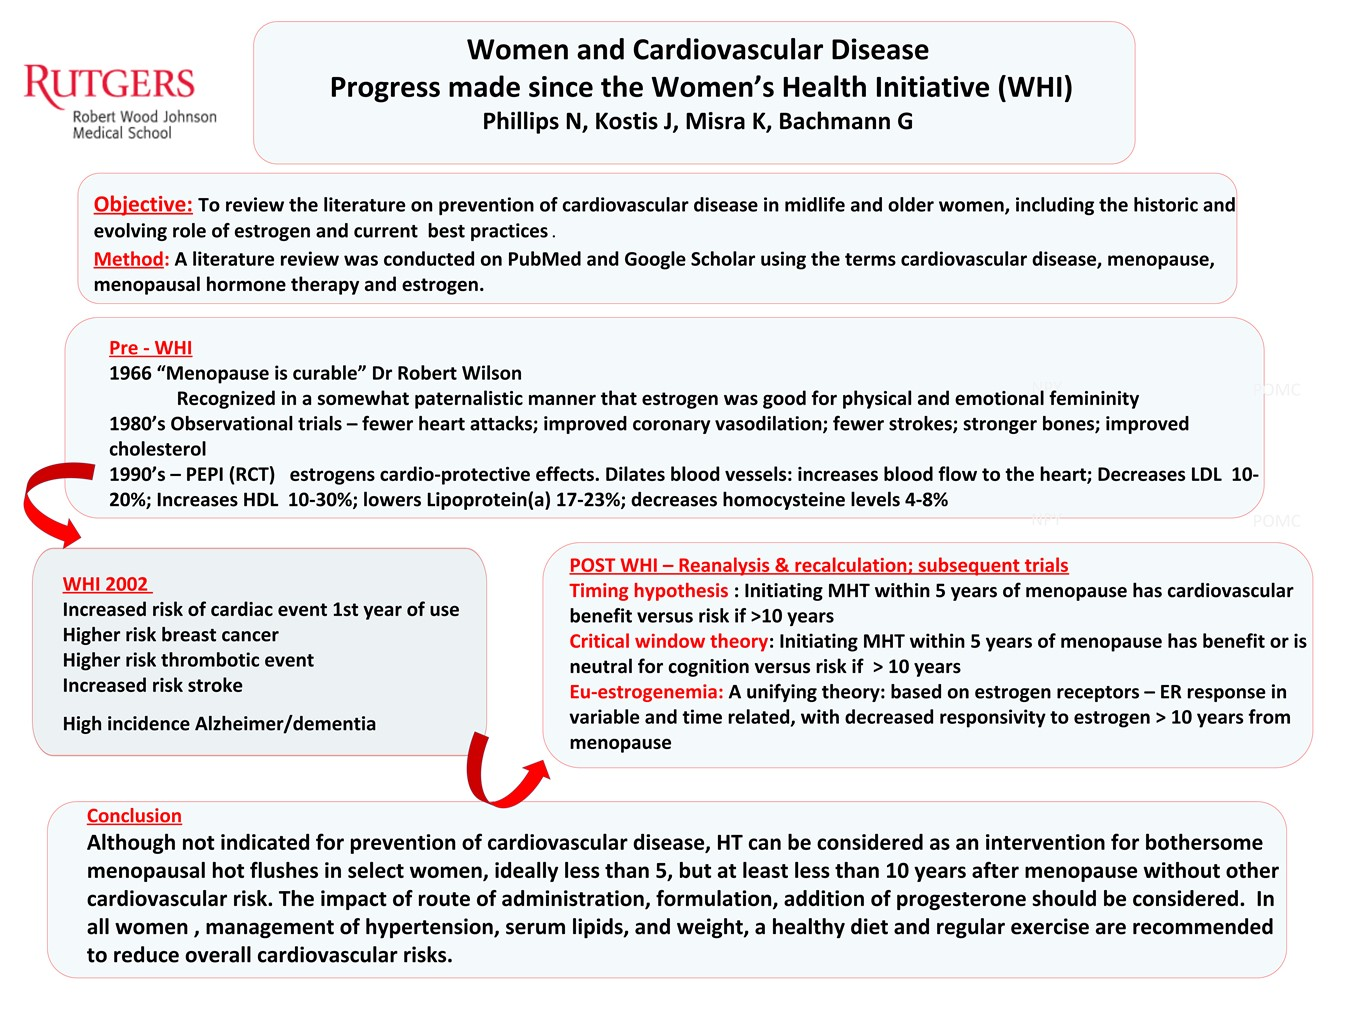 Women and Cardiovascular Disease: Progress made since the Women's Health Initiative